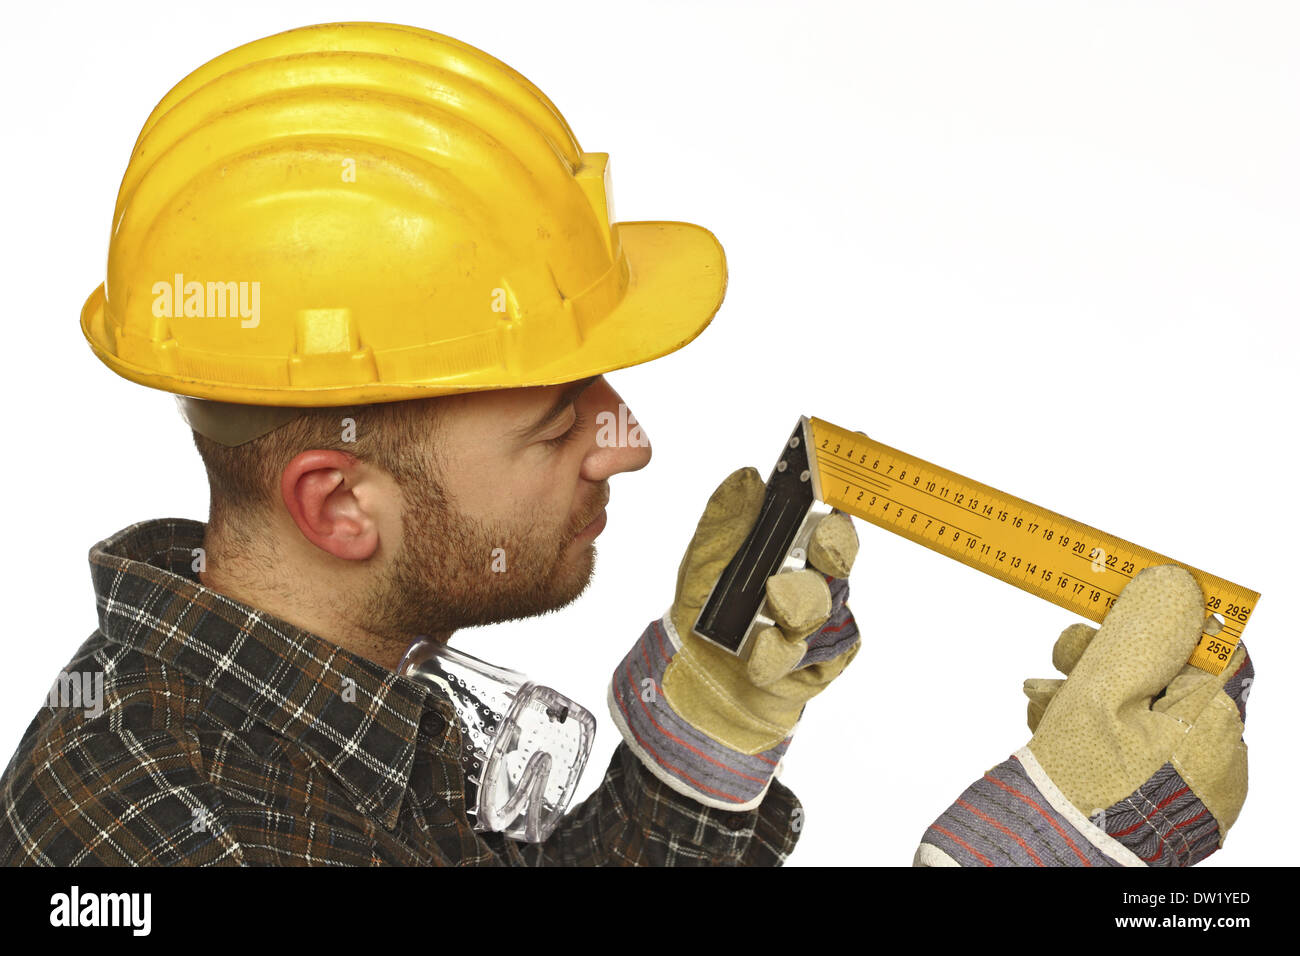 be precise at work - Stock Image